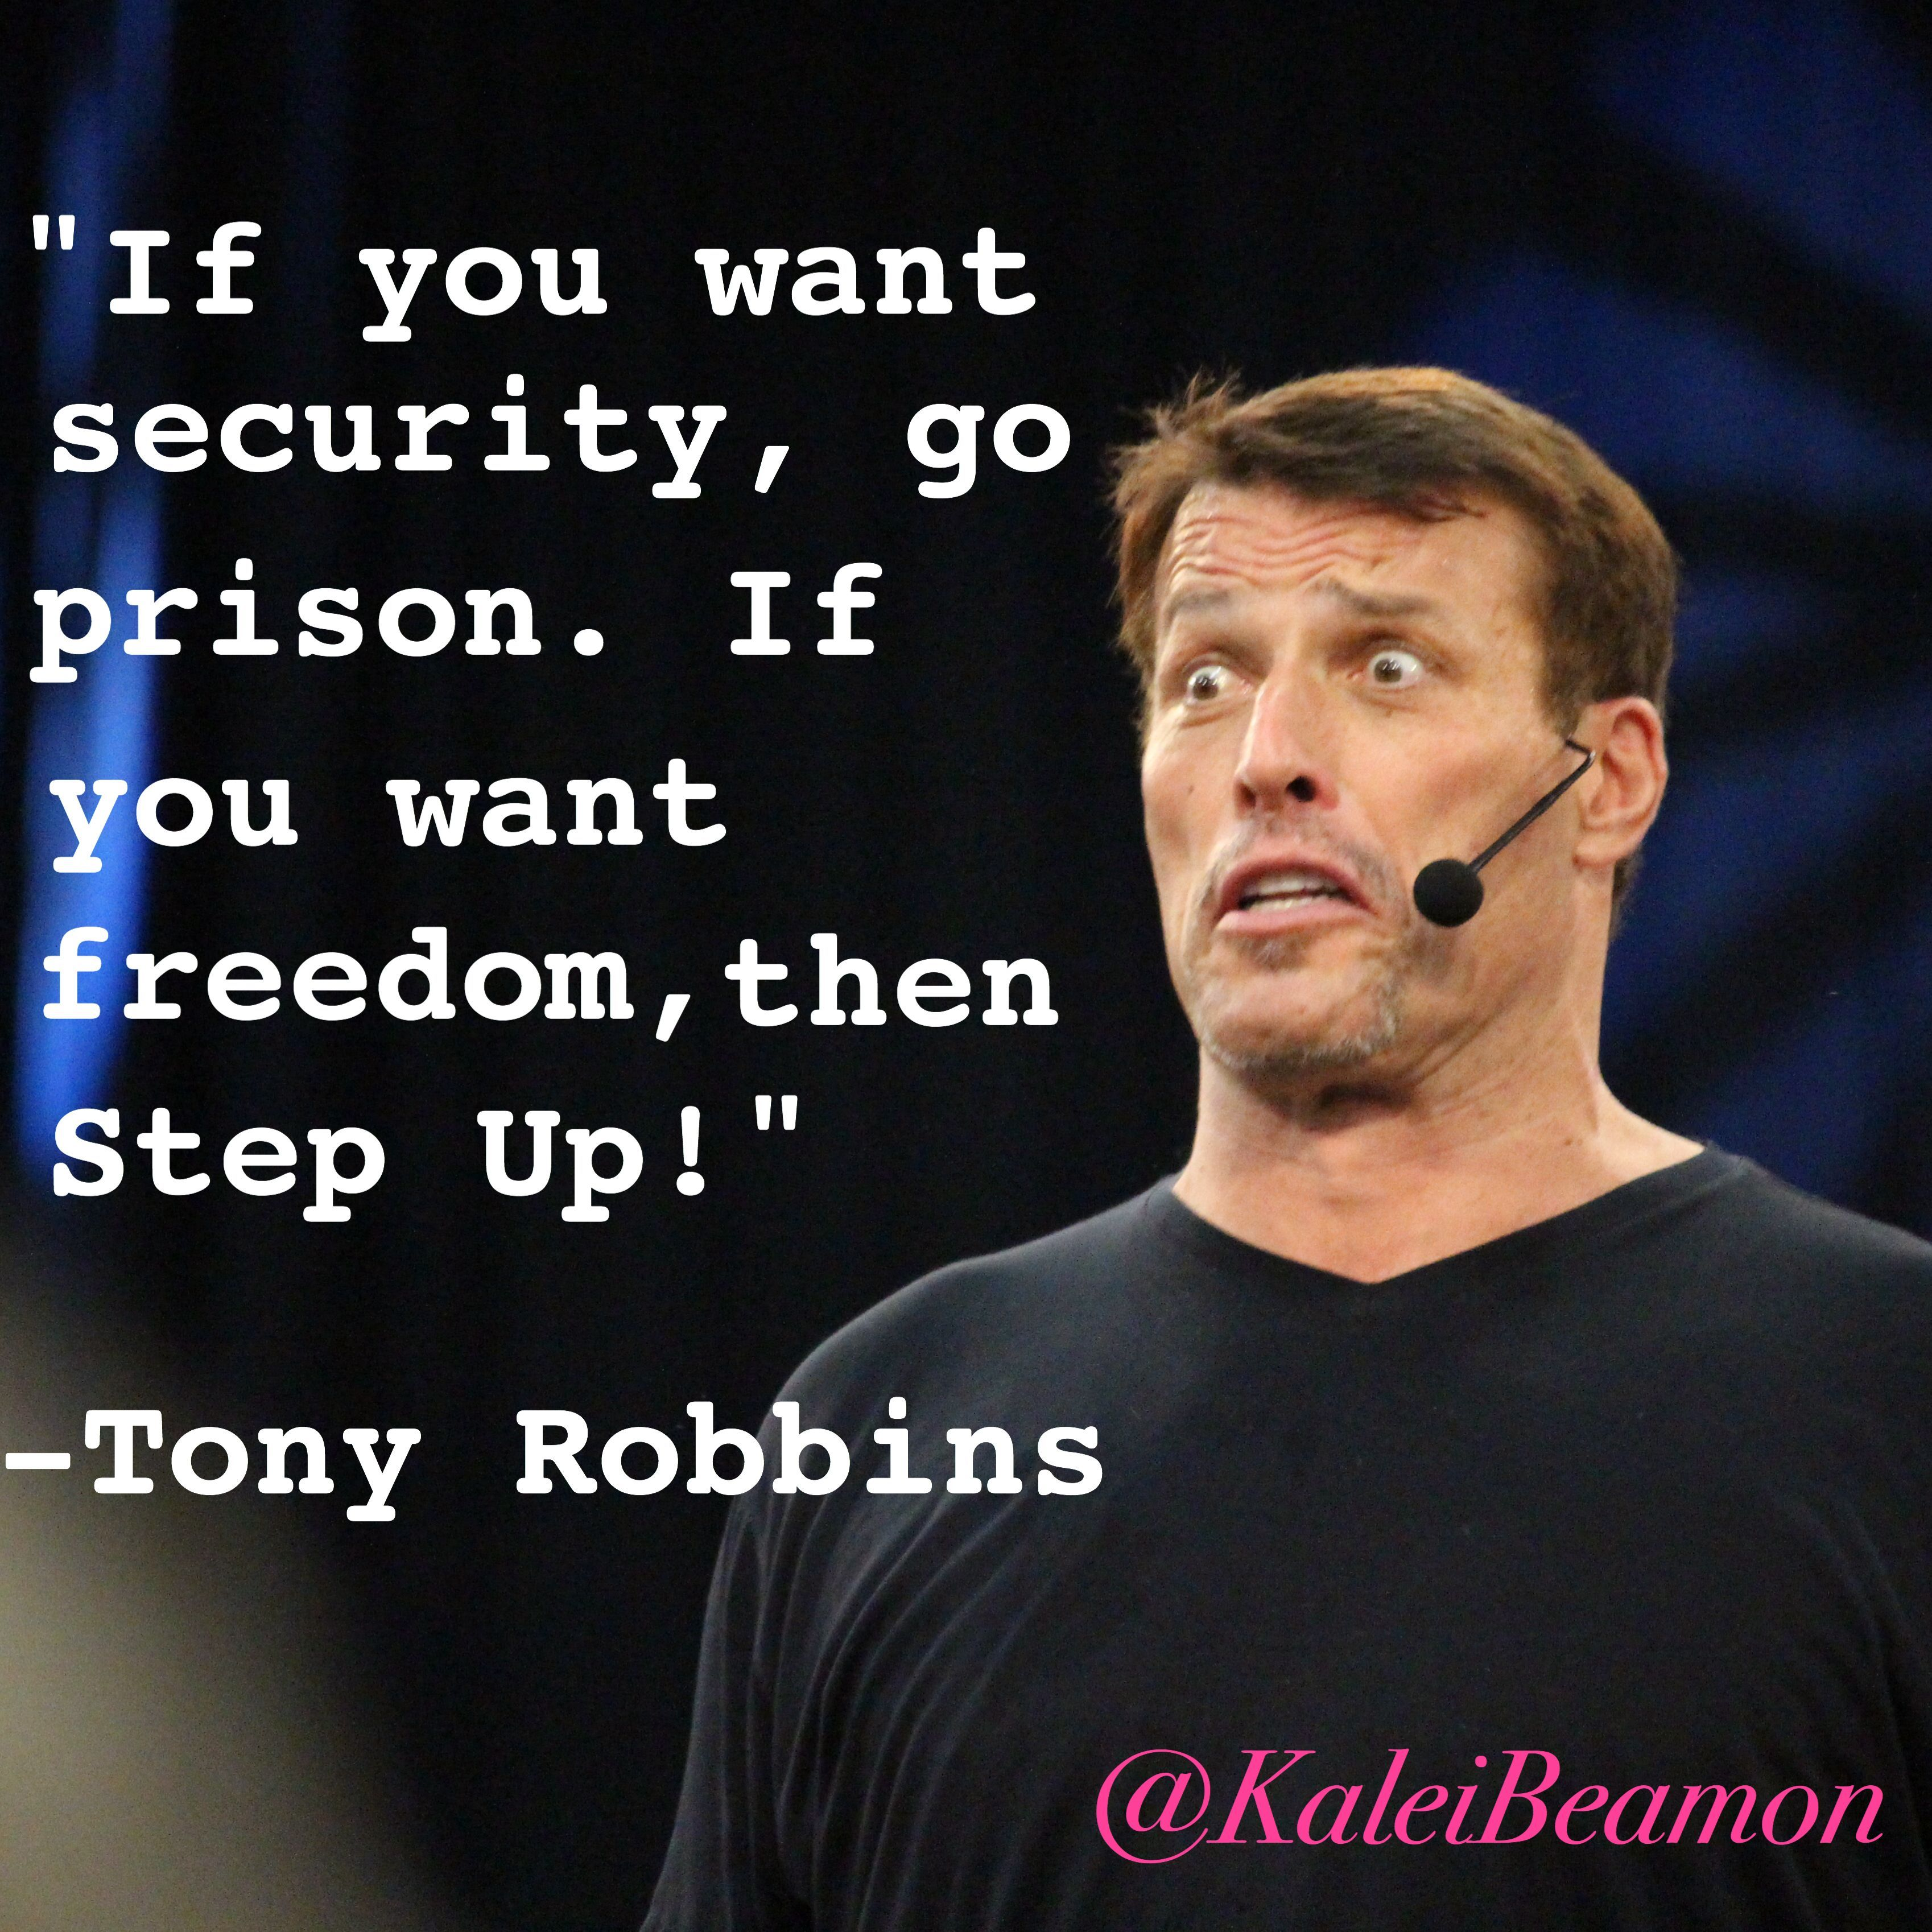 Anthony Robbins Quotes: Great Quotes. Famous Quotes. Celebrity Quotes